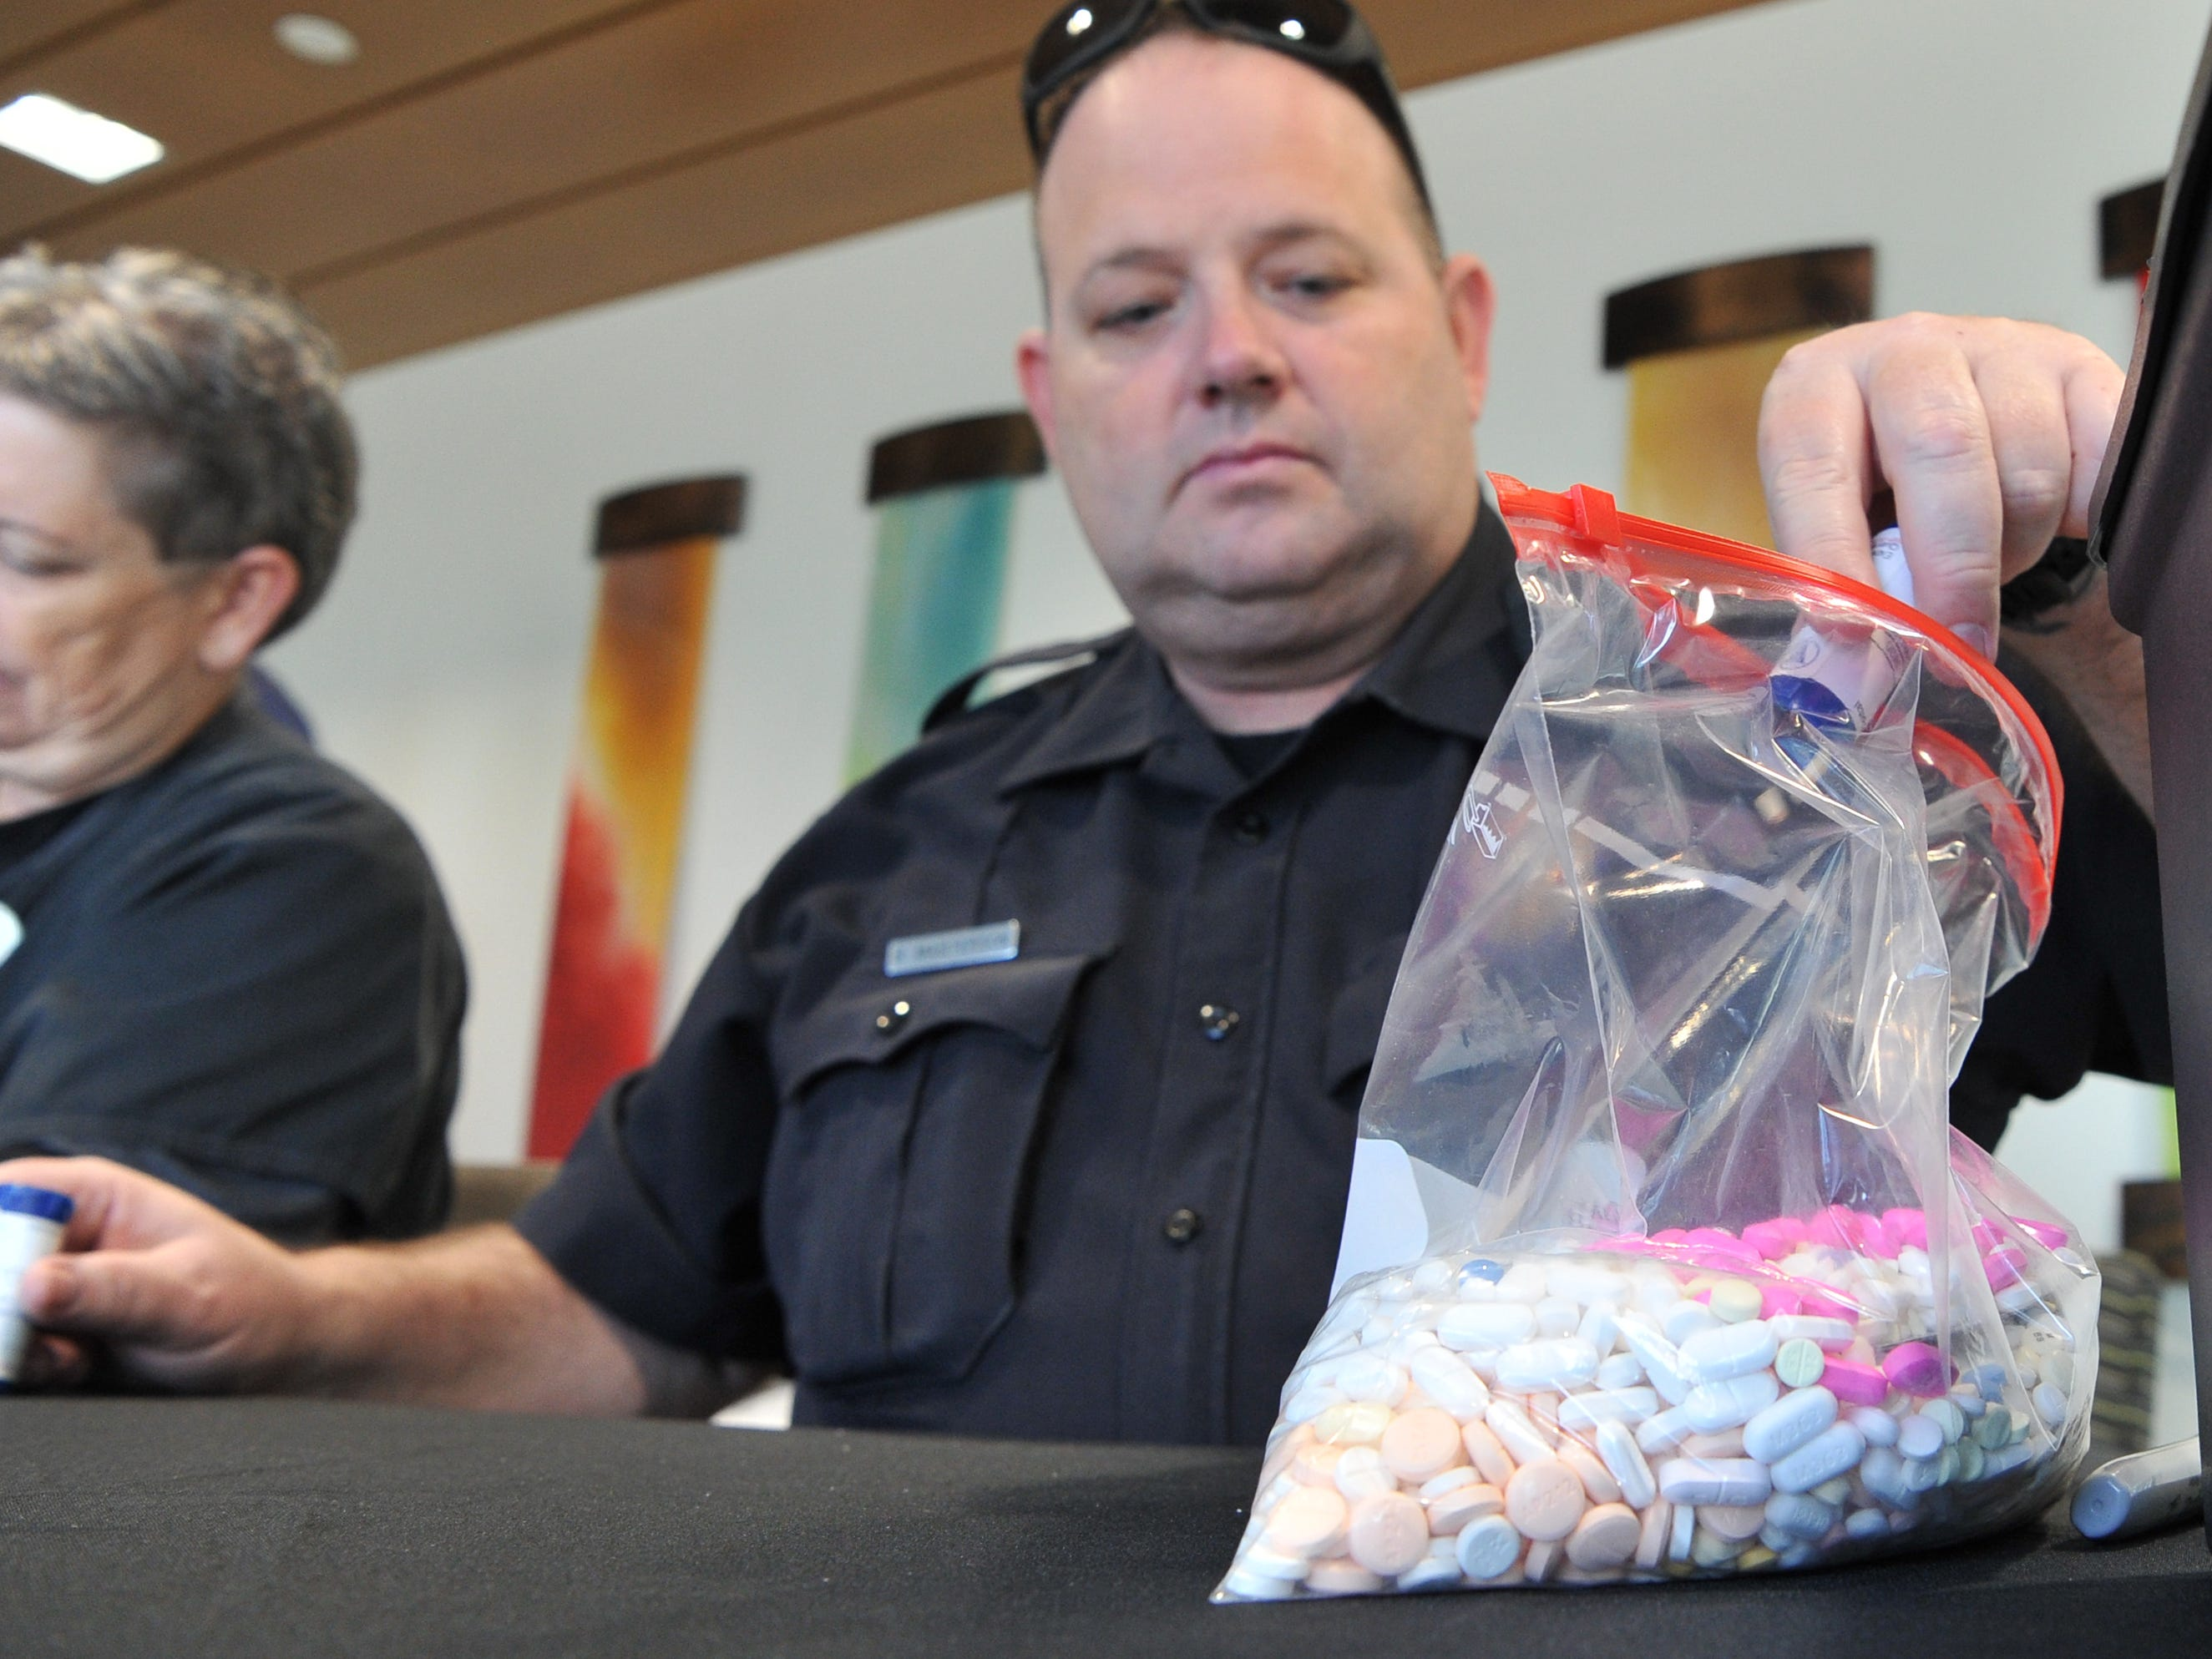 Wichita Fall police officer, Brian Masterson collects prescription and over-the-counter medication during United Regional hospital's and the Wichita Falls Police department's drug take-back event held at the south end of the Emergency Room, Friday afternoon.